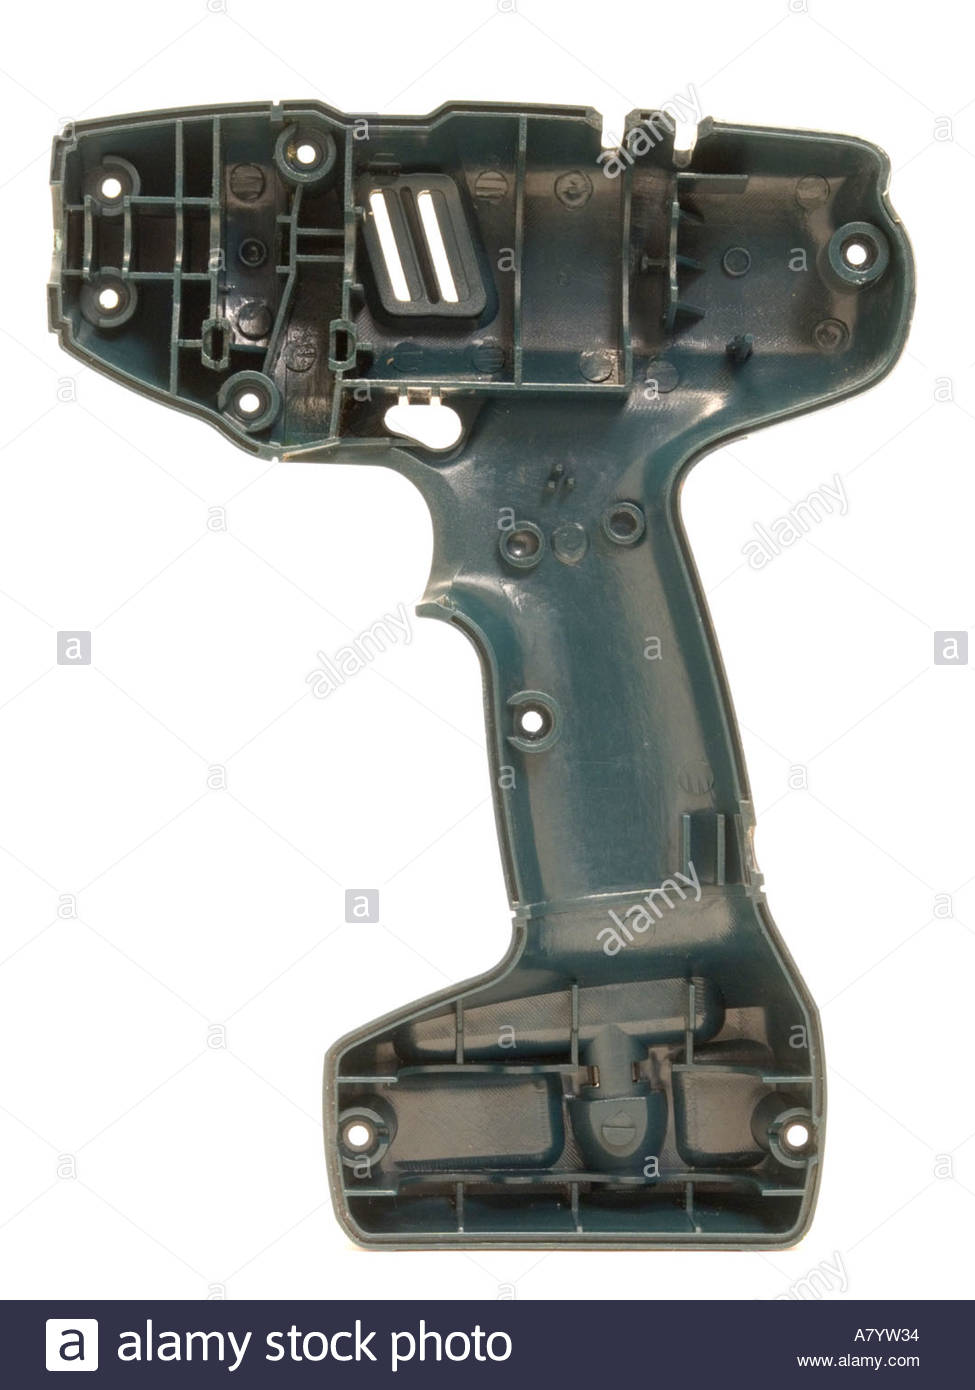 plastic mold of a cordless hand drill - Stock Image